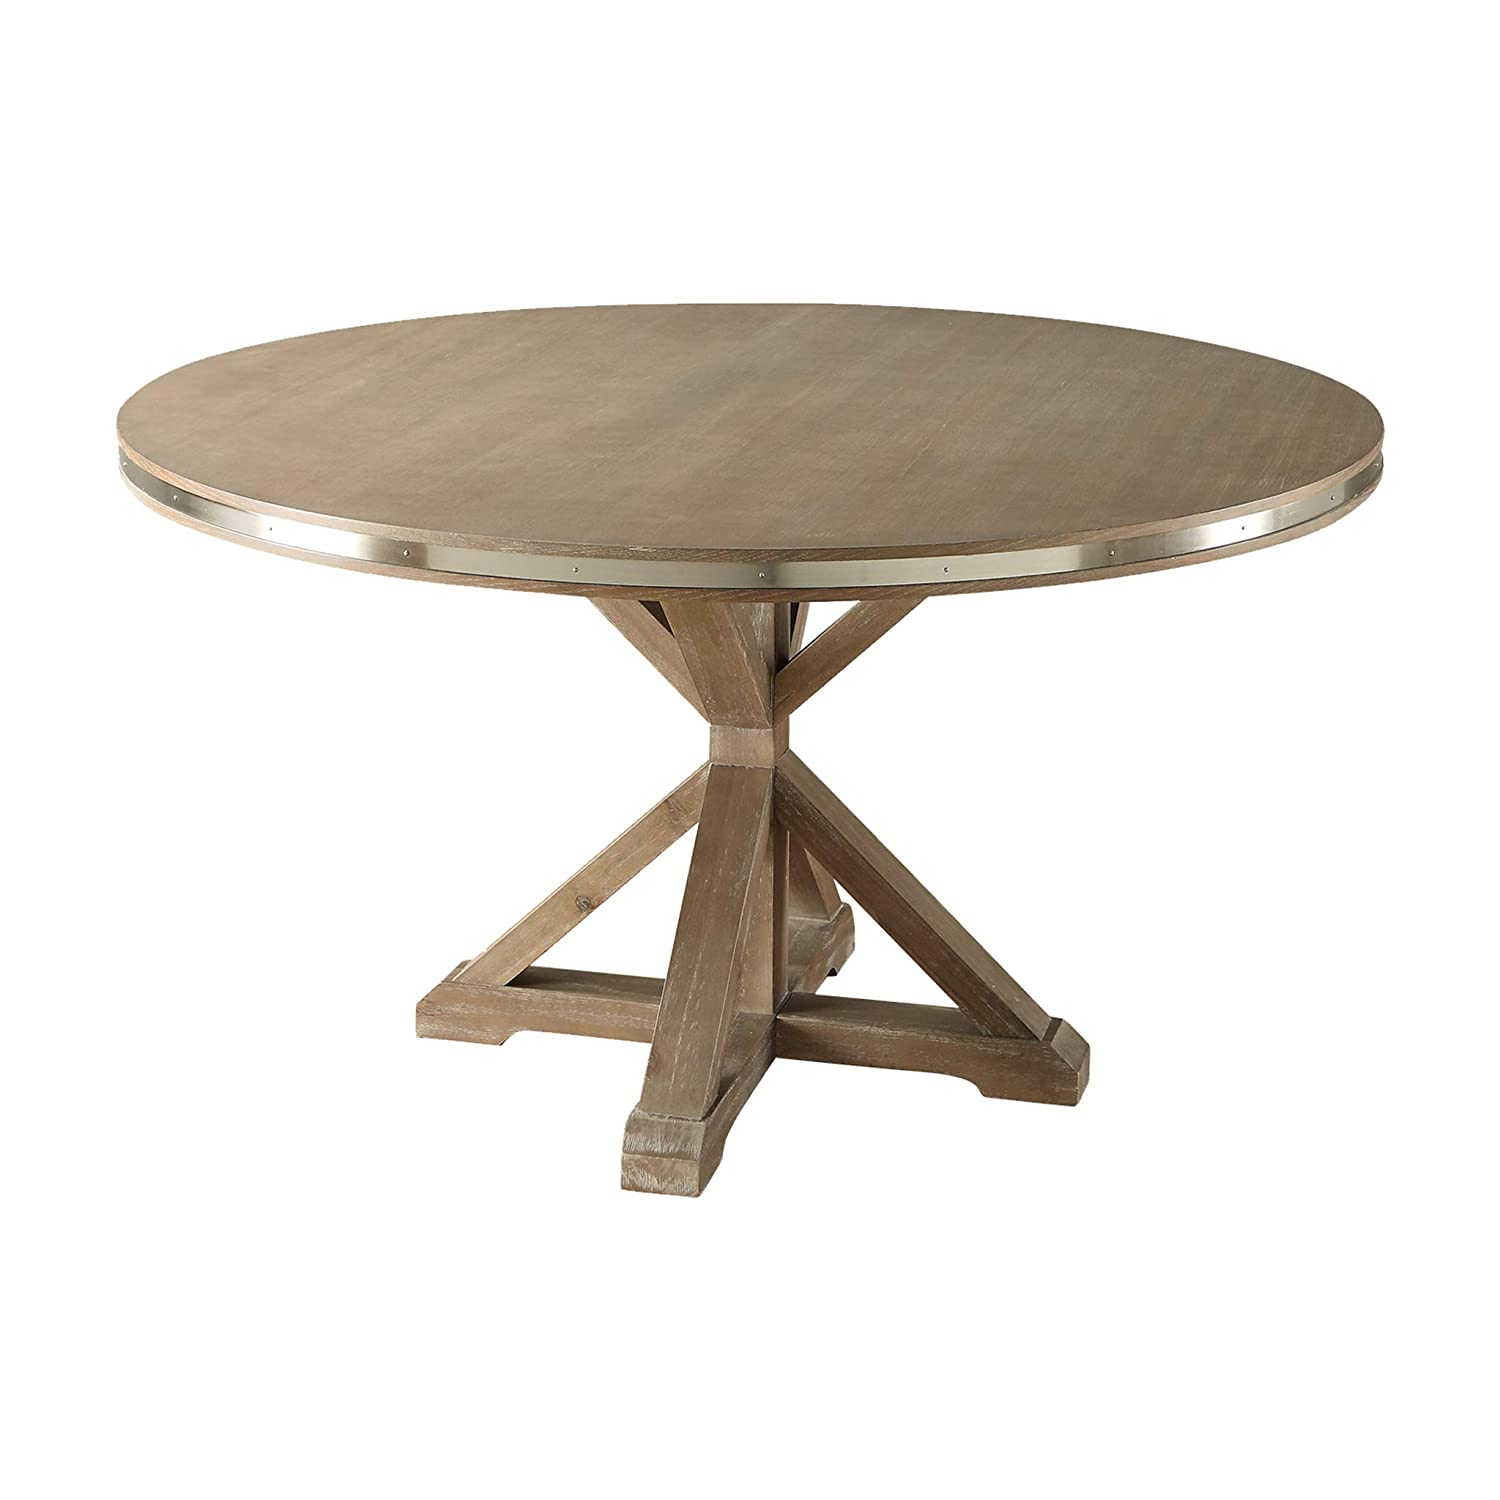 Homelegance 54 Round Dining Table, Oak